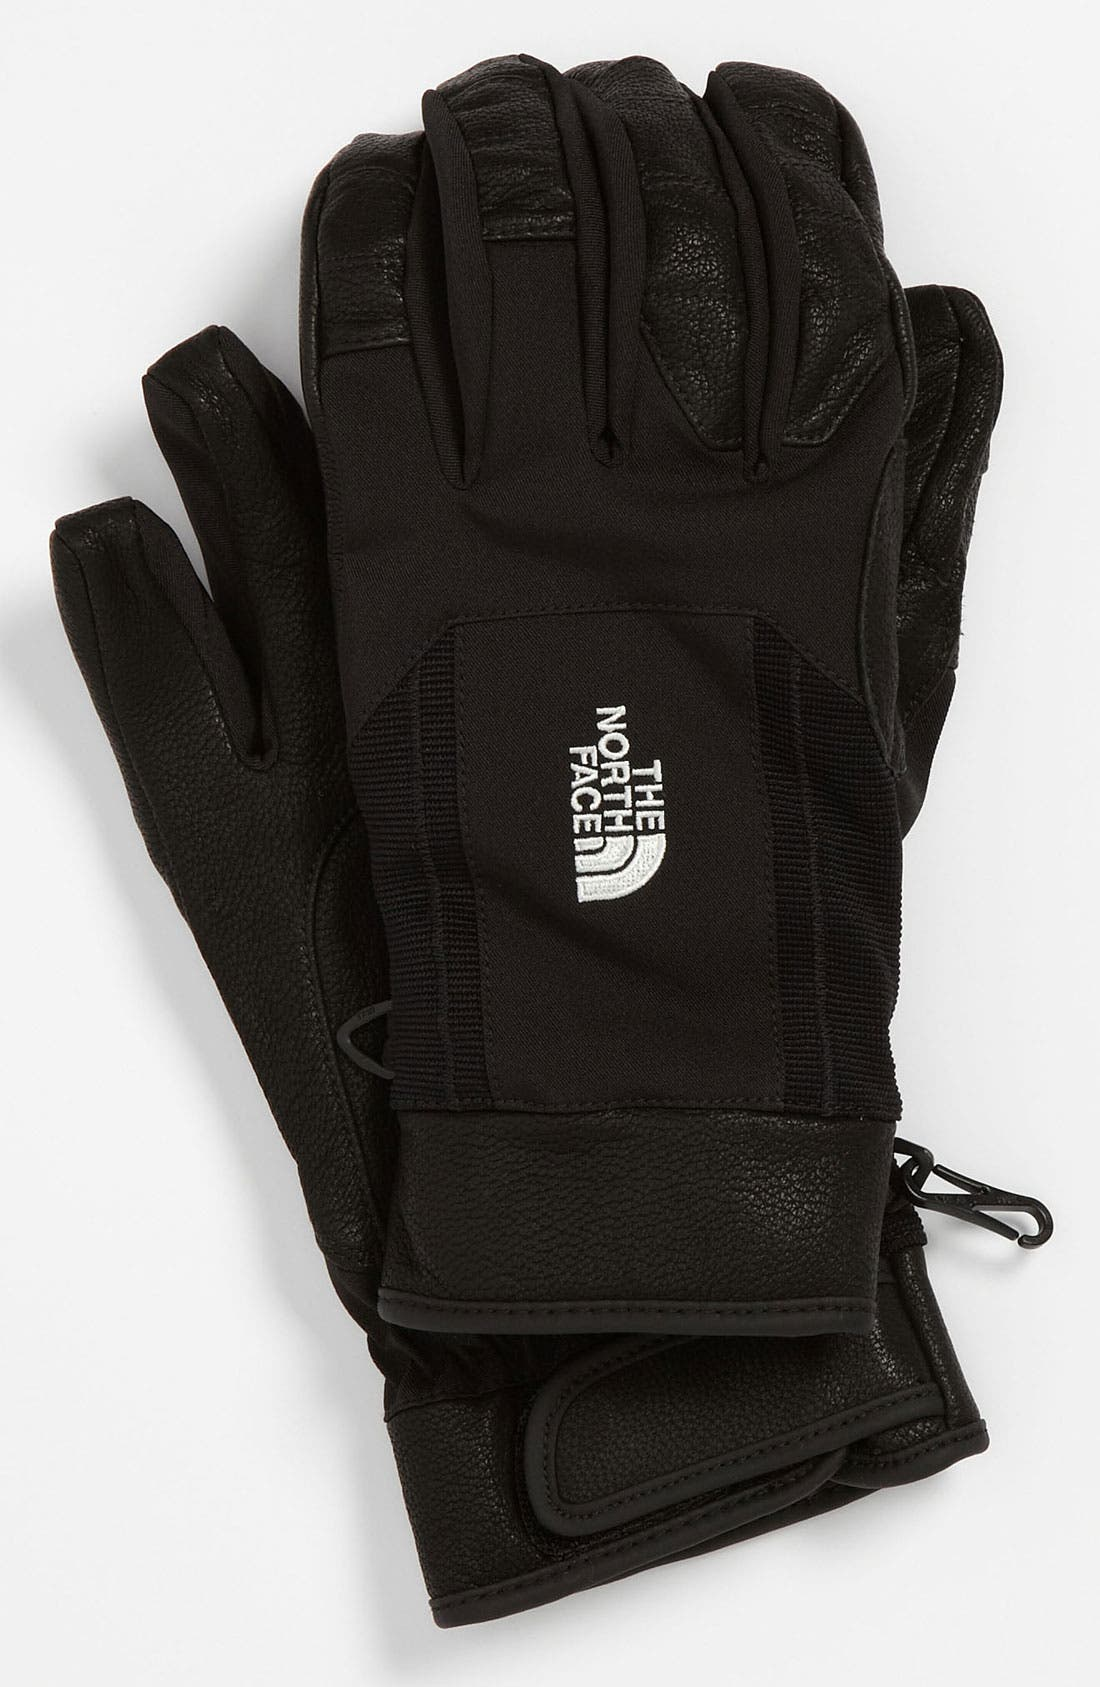 Main Image - The North Face 'Hoback' Gloves